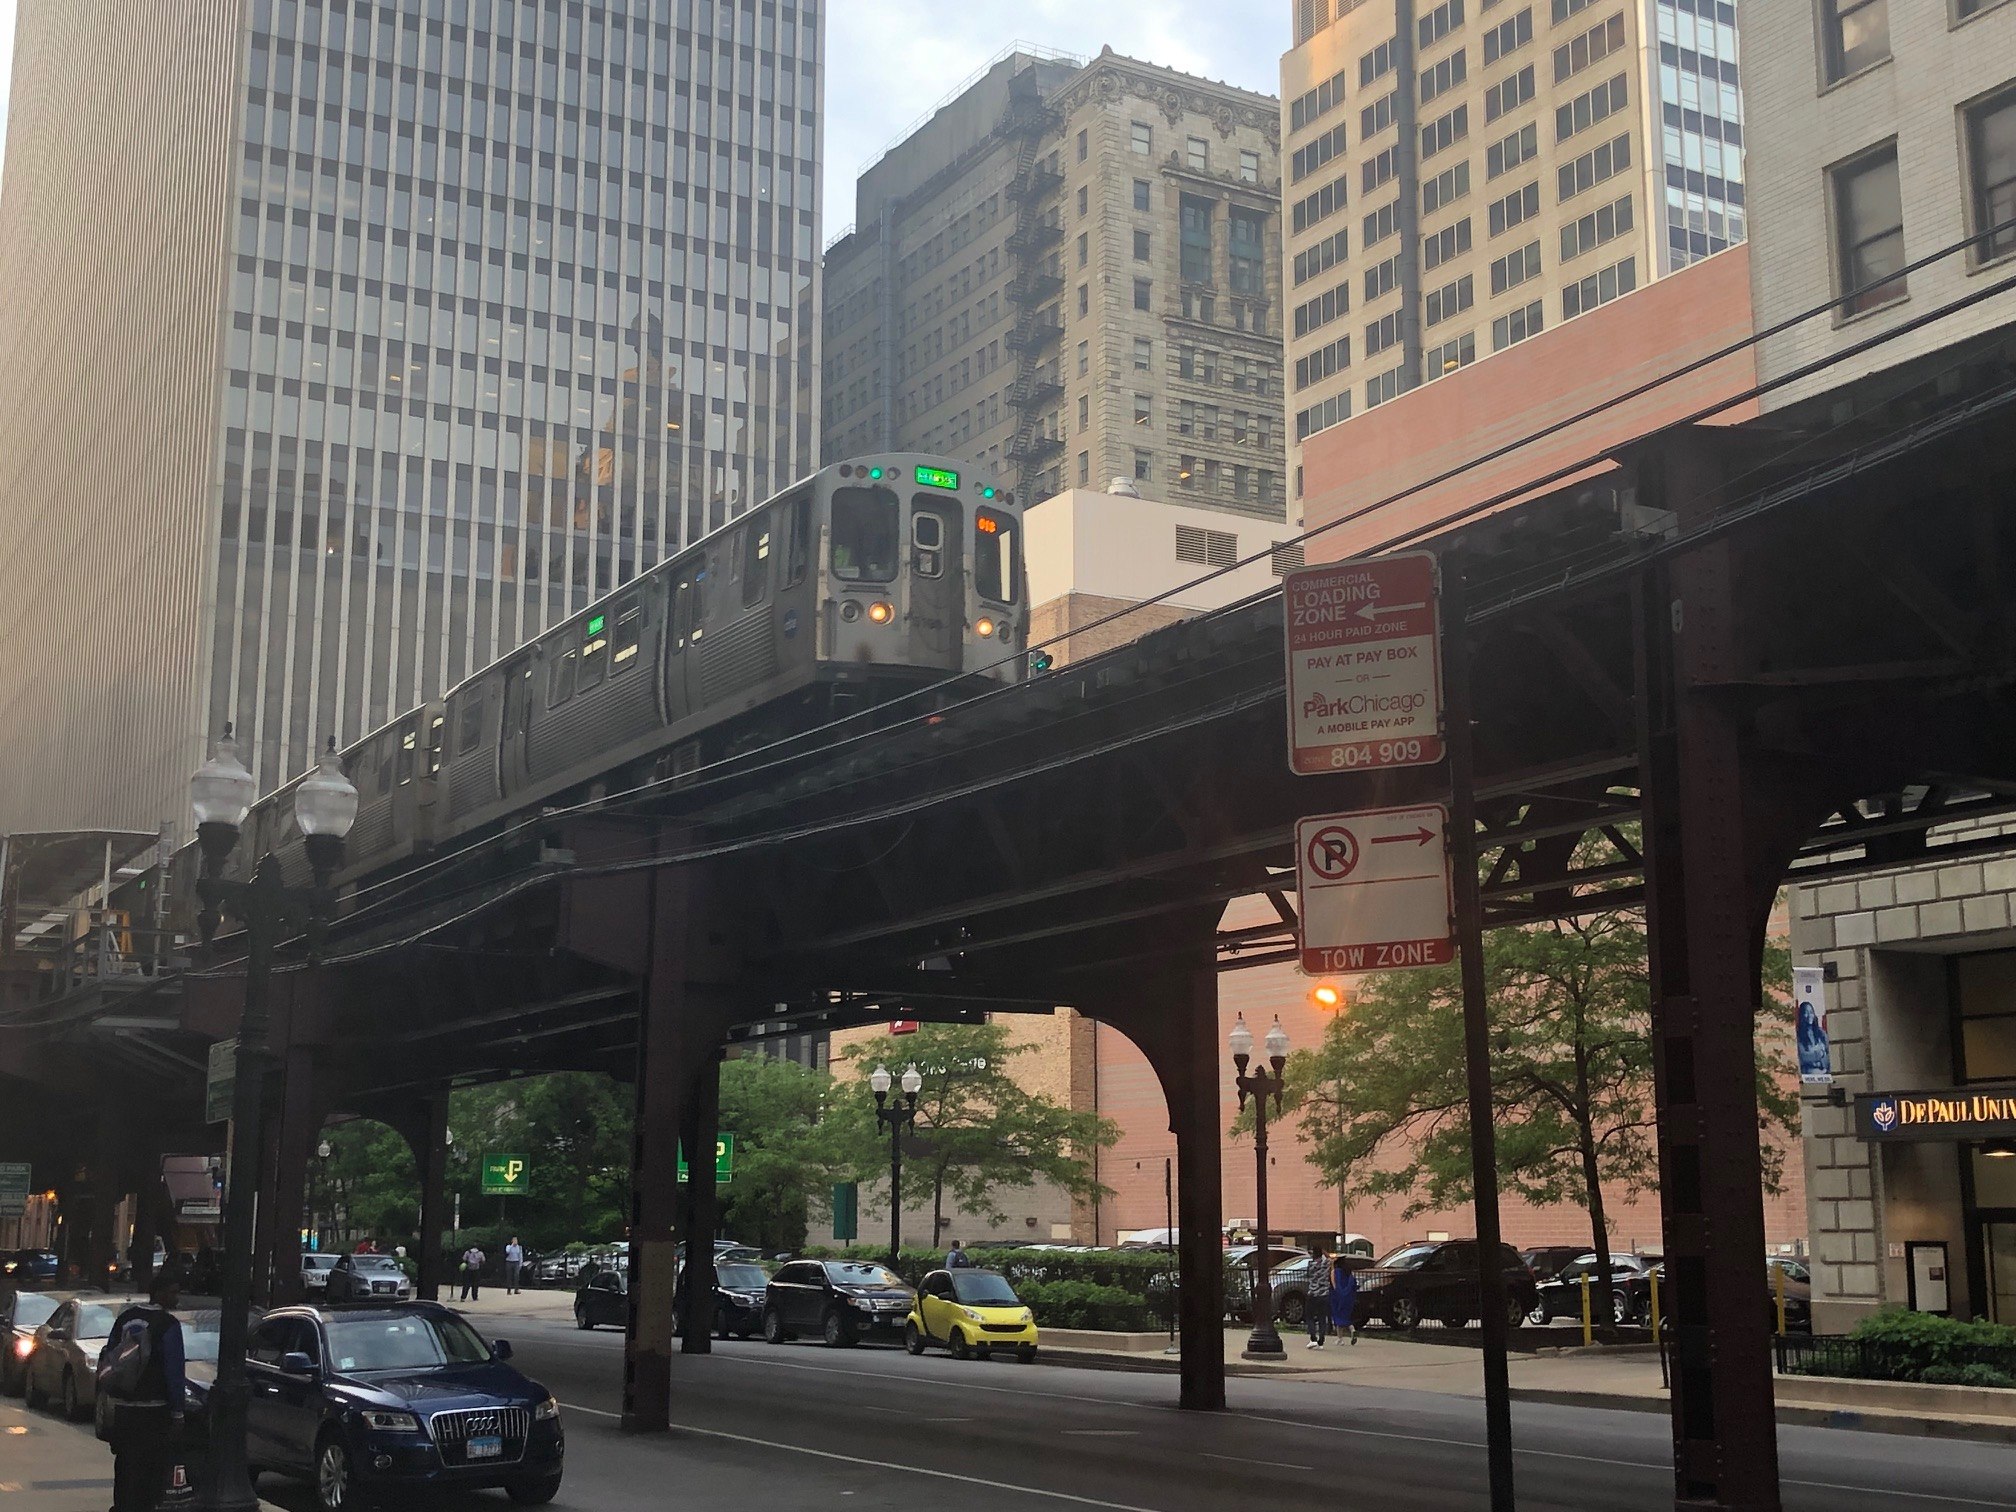 Seven injured after CTA derailment - Railway Track and